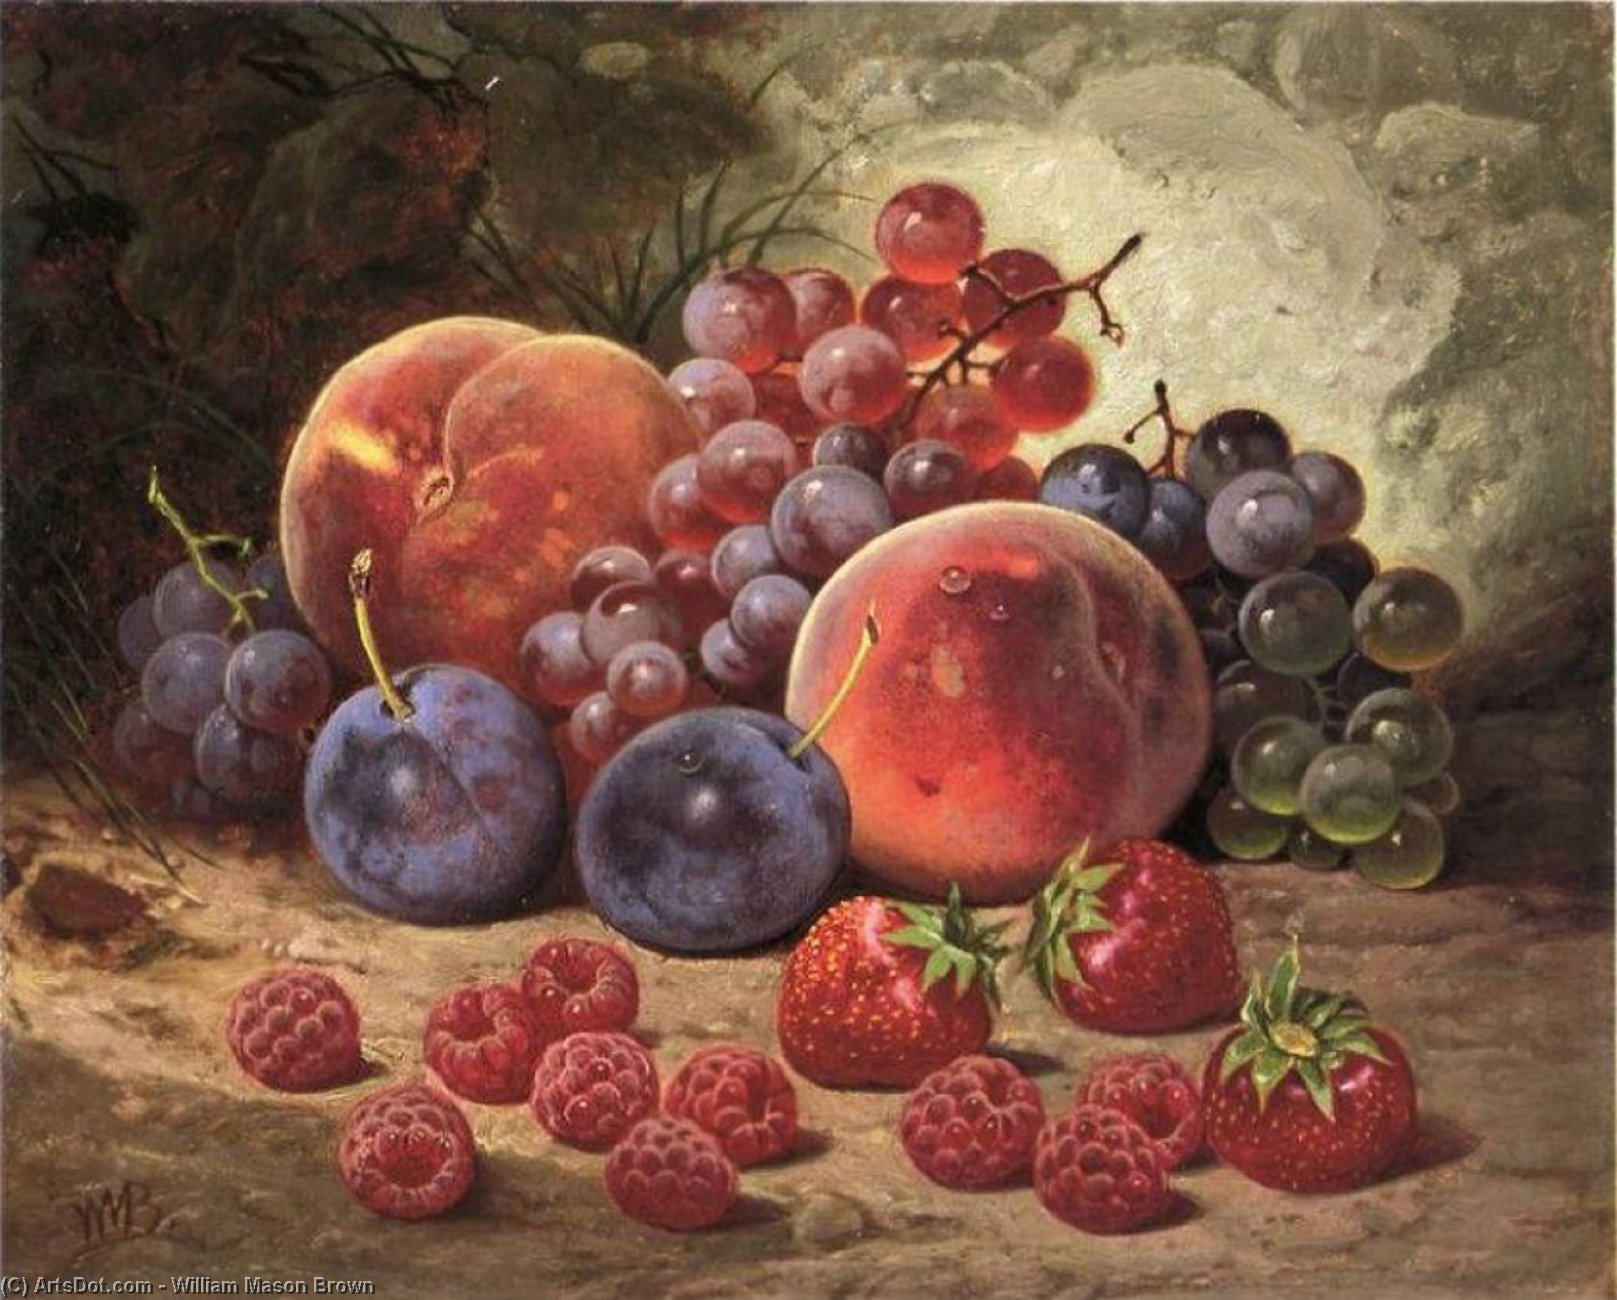 Fruits of Summer, Painting by William Mason Brown (1828-1898, United States)